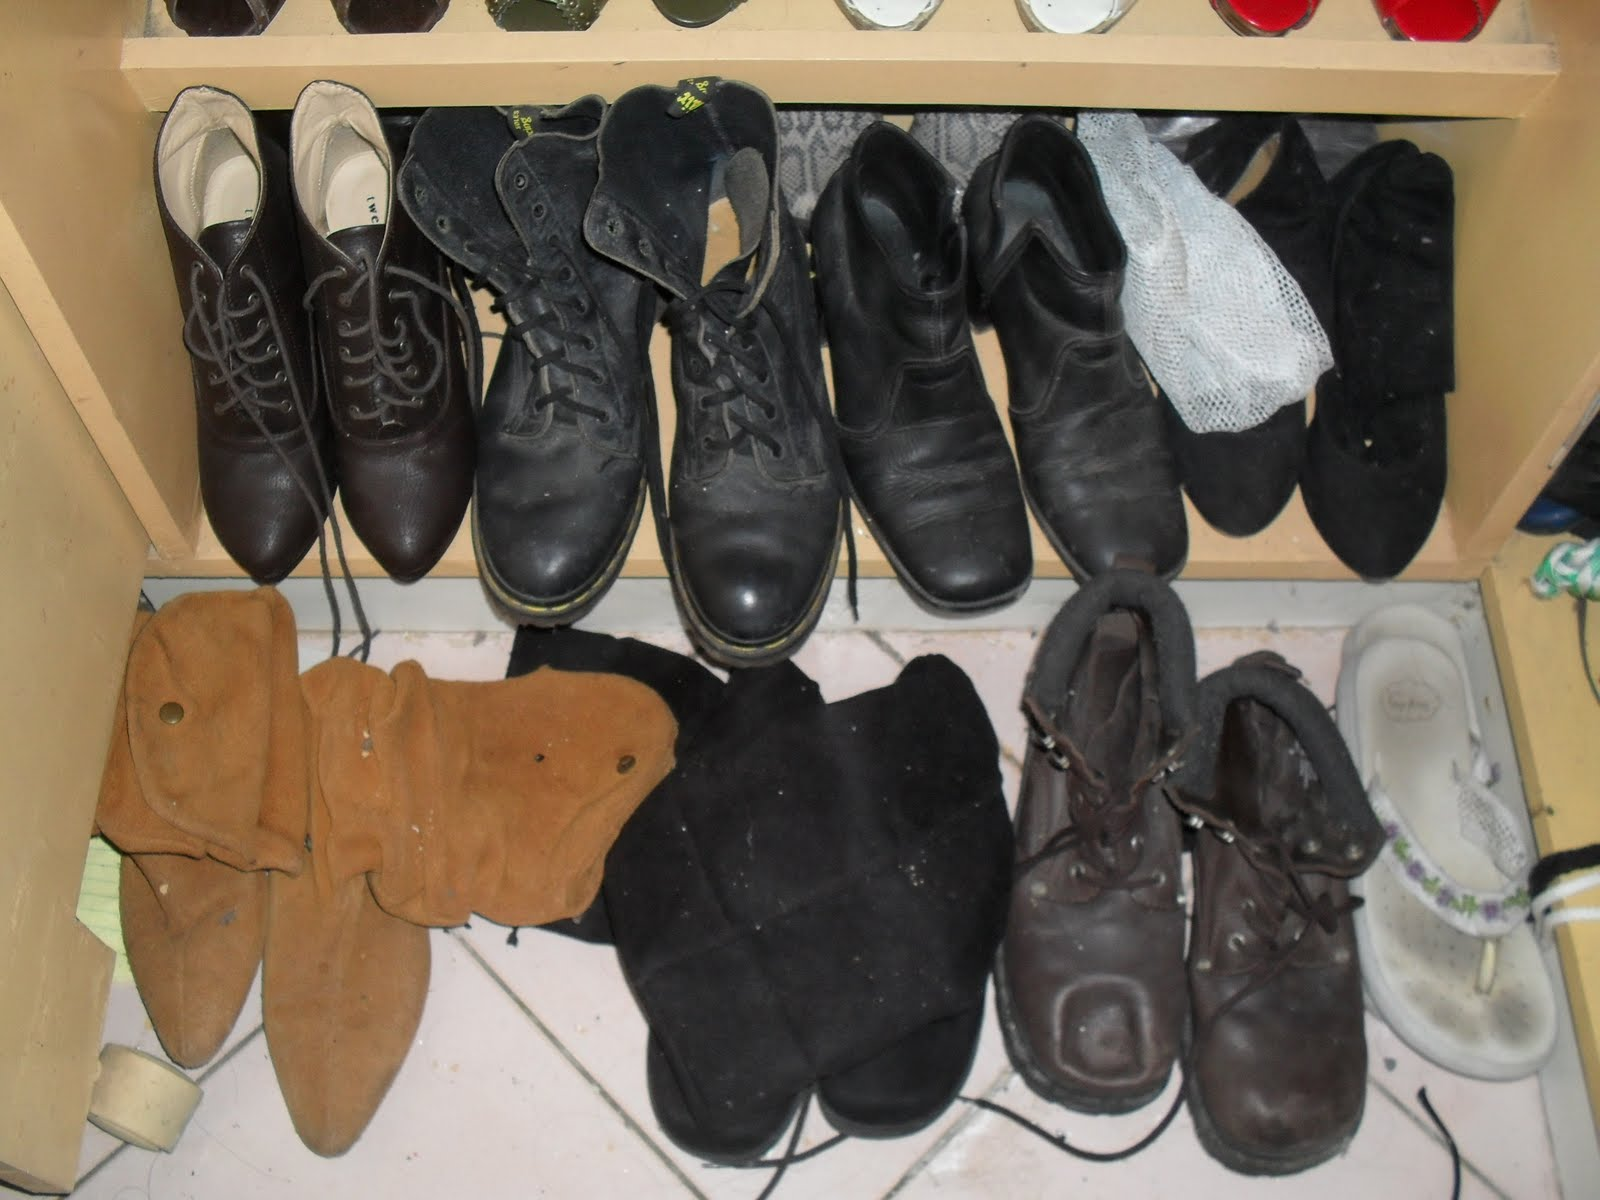 Last Row: BOOTS! L-R (Forever 21, Doc Martens, Celine, Ukay)